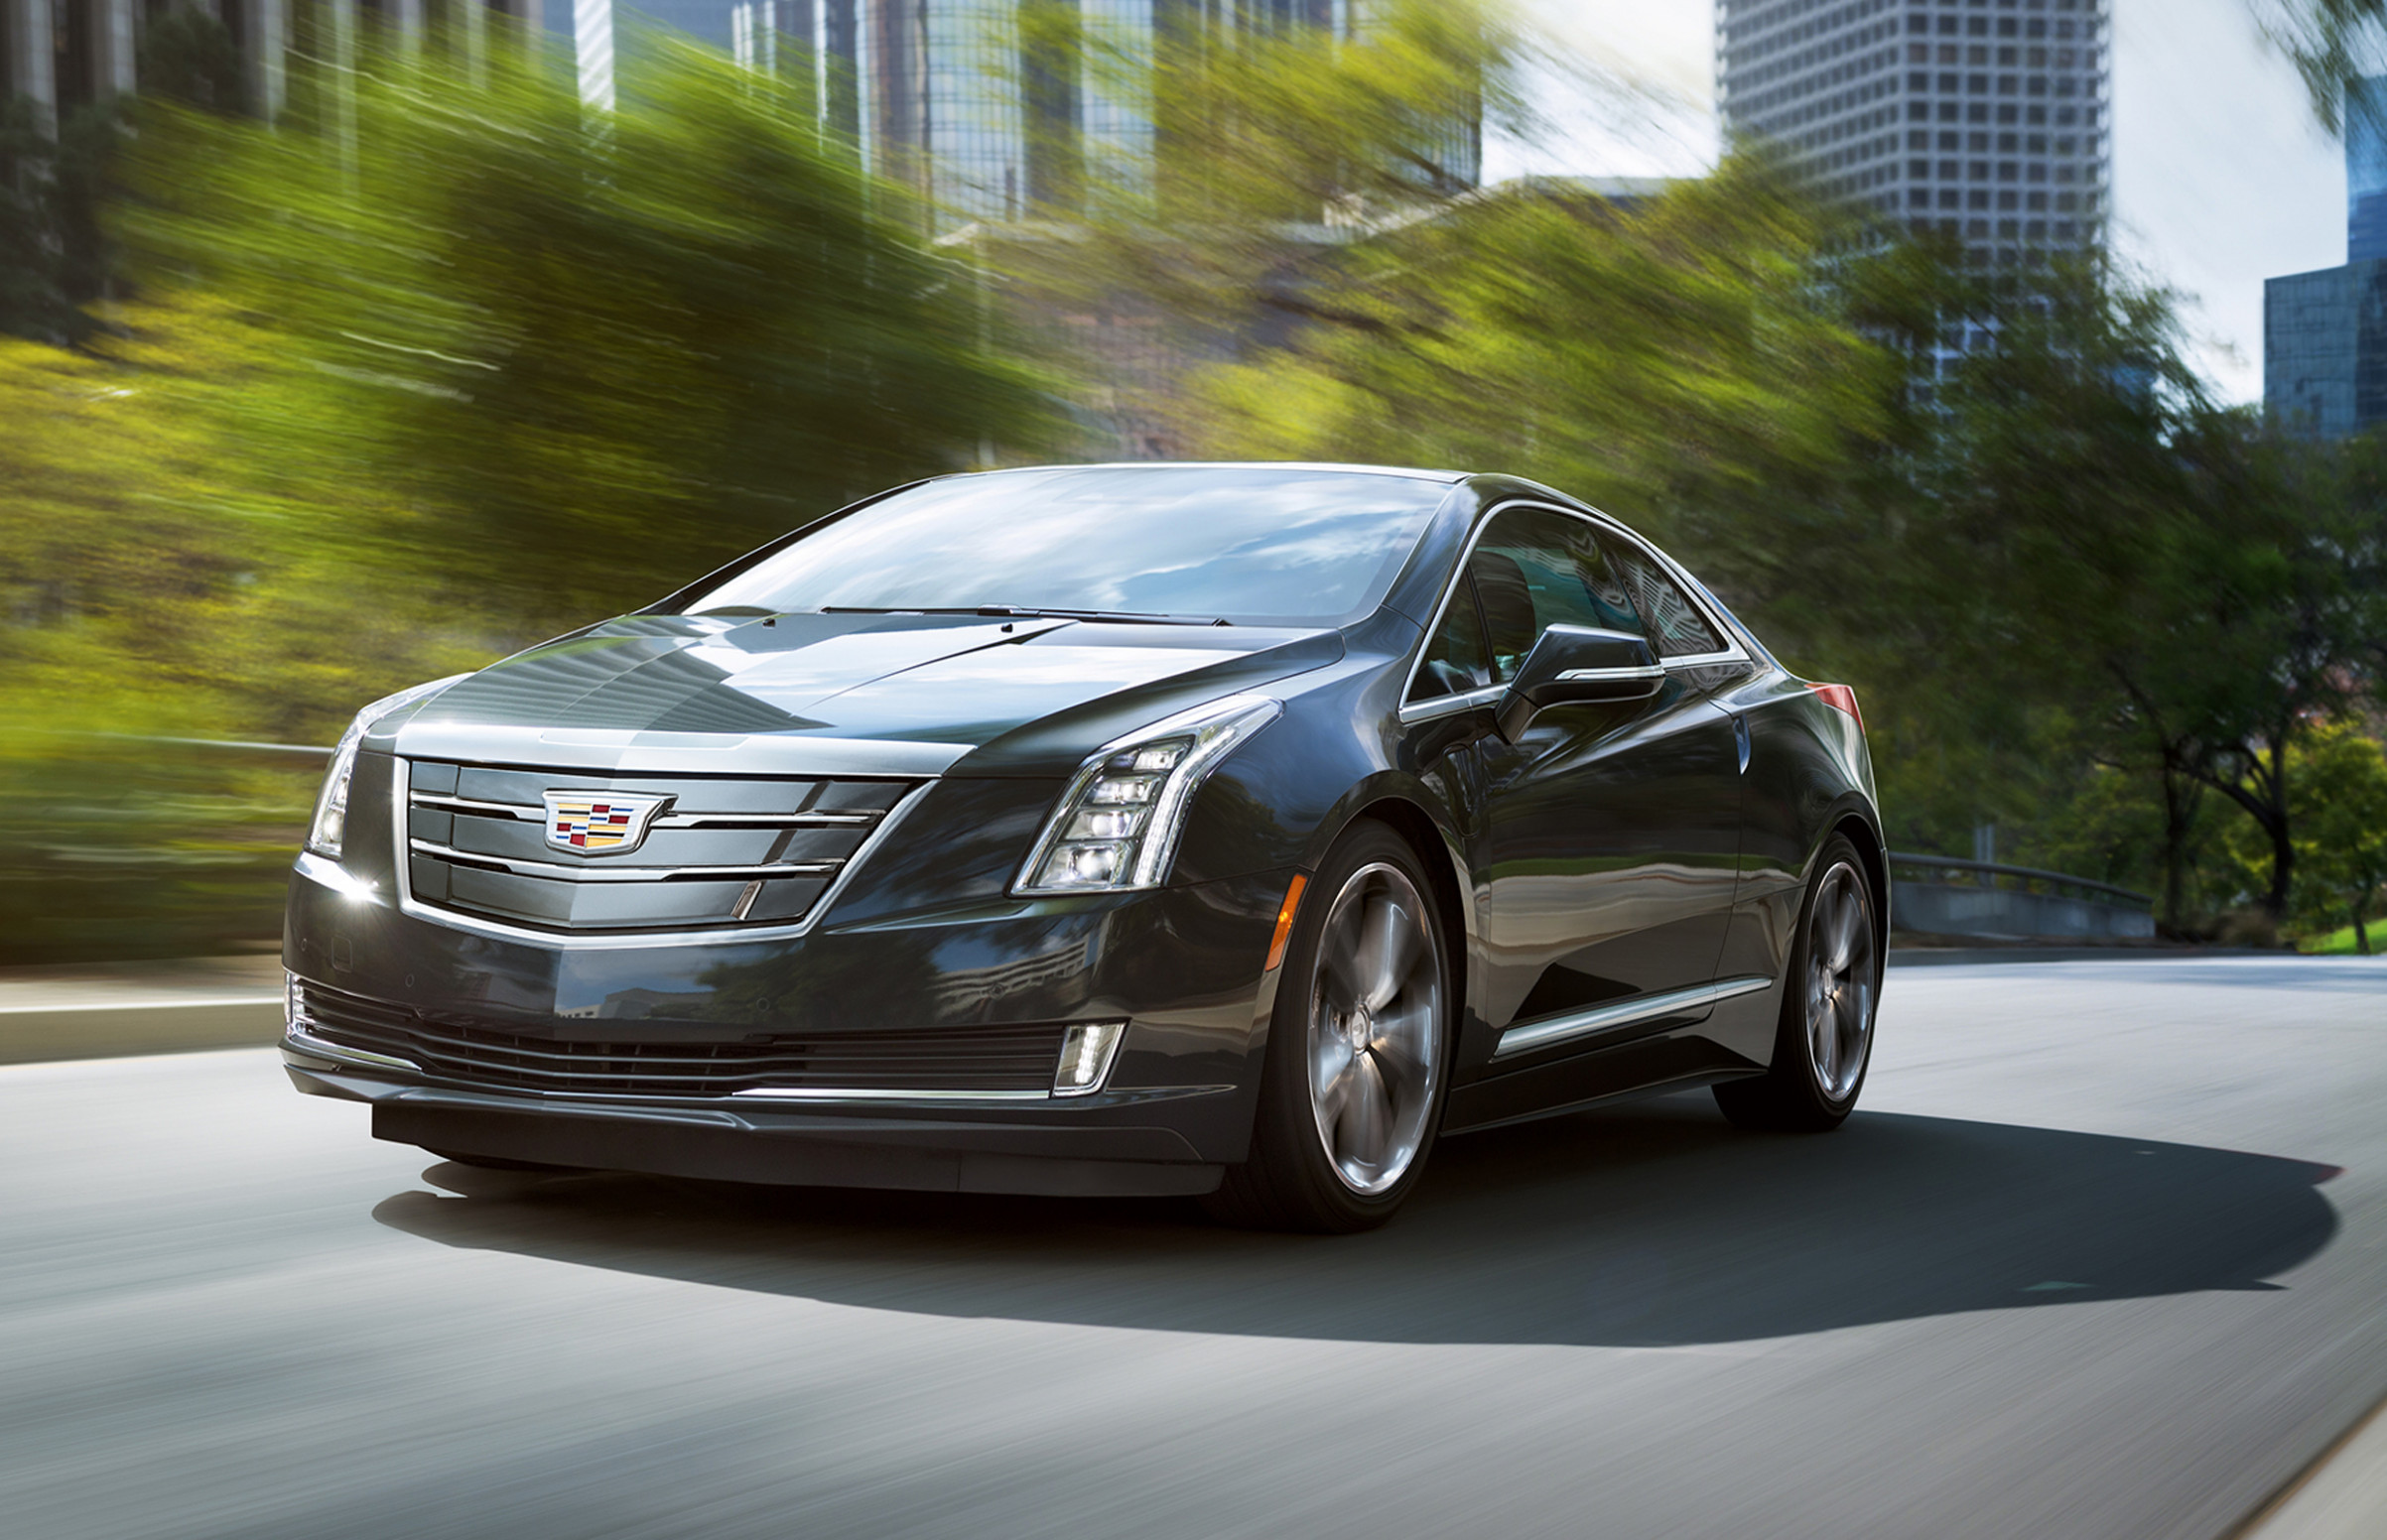 Cadillac ELR 8 - View Specs, Prices, Photos & More | Driving - cadillac plug in hybrid 2020